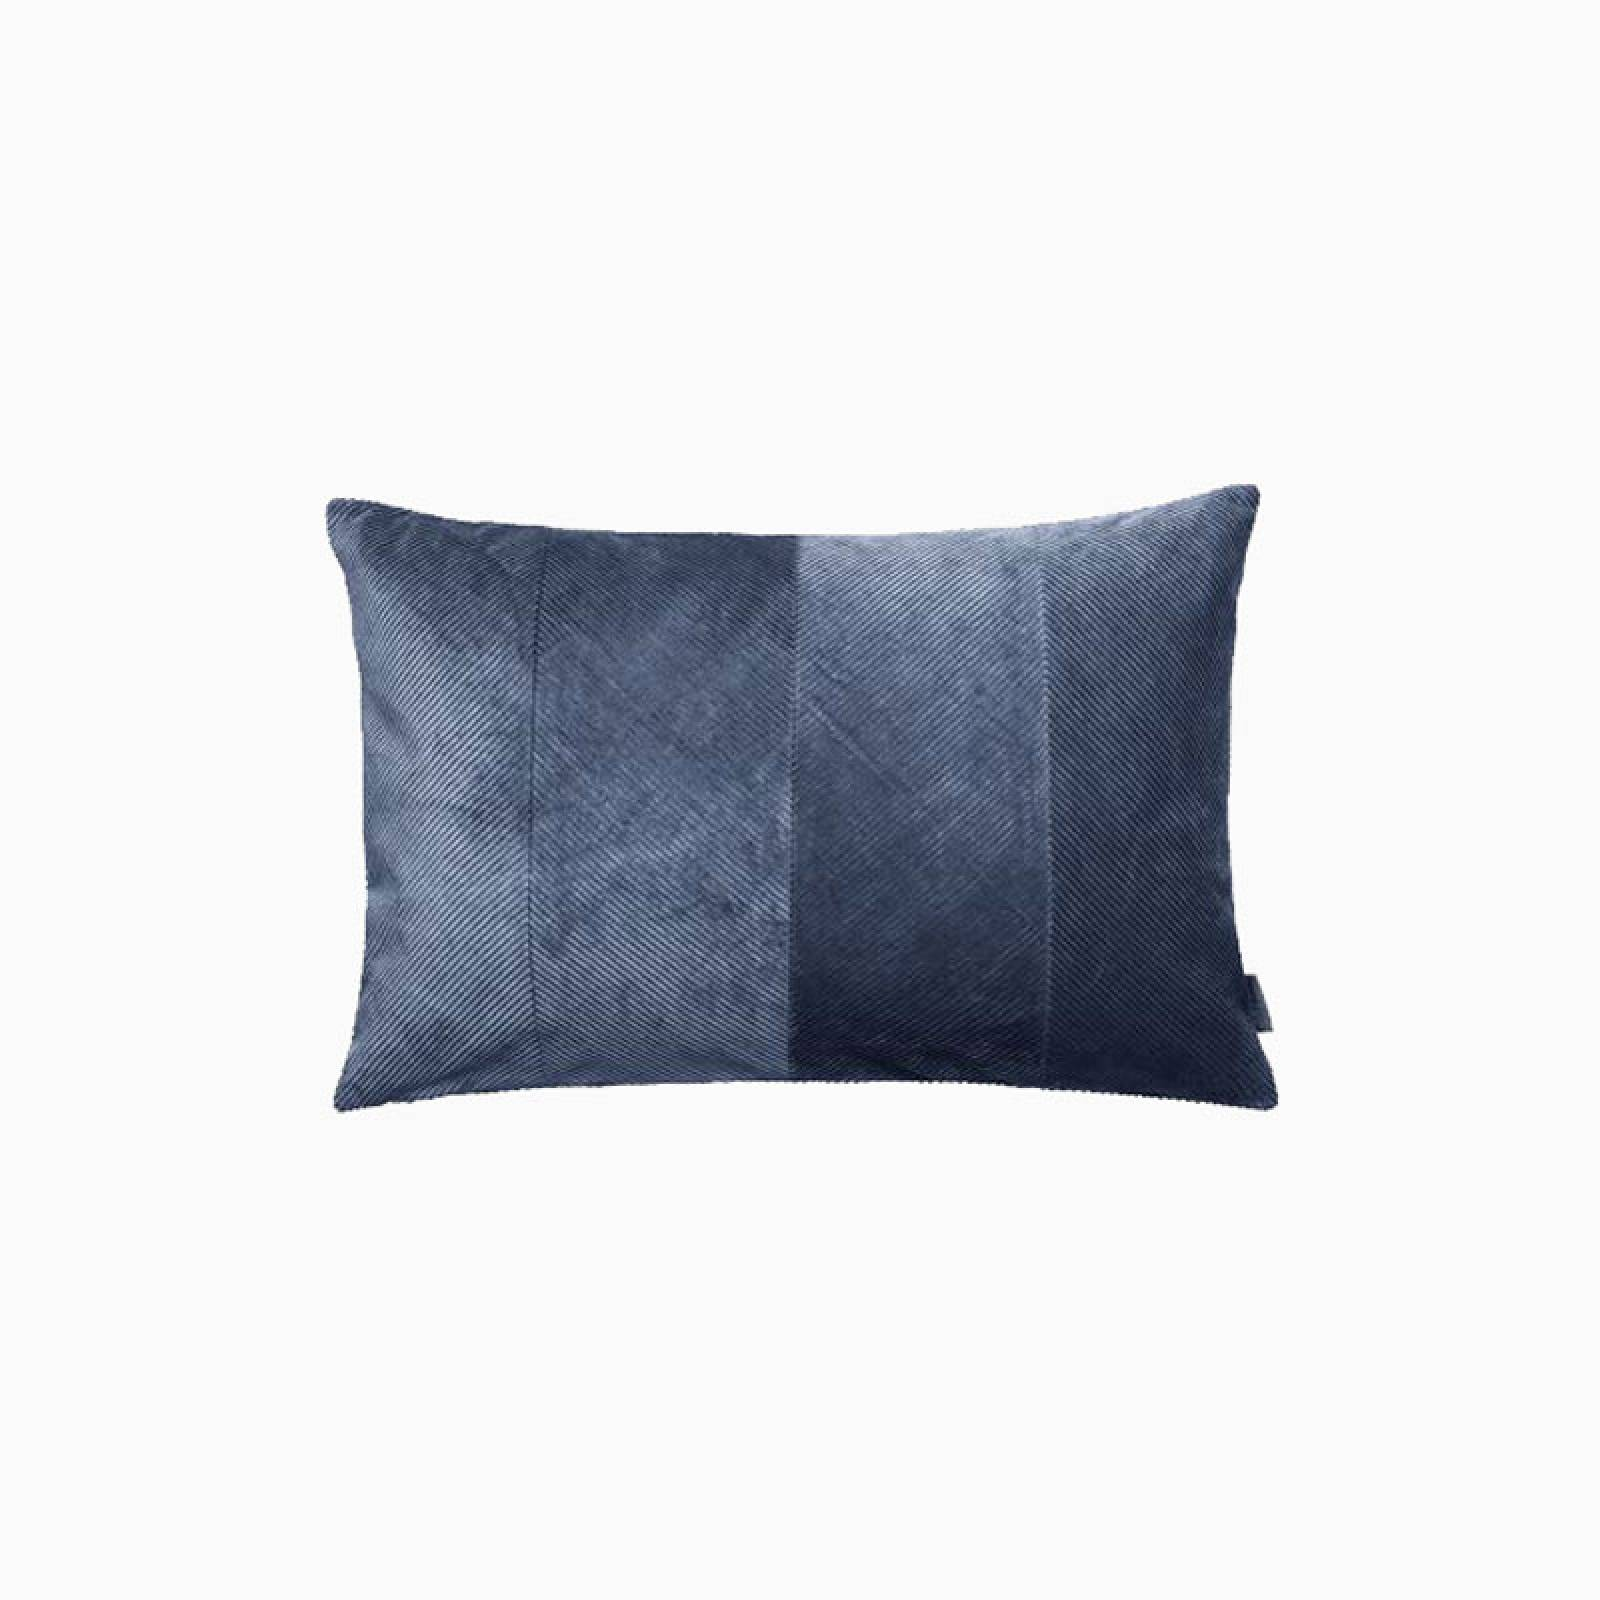 Rectangular Corduroy Cushion In Royal Blue With Gold Zip